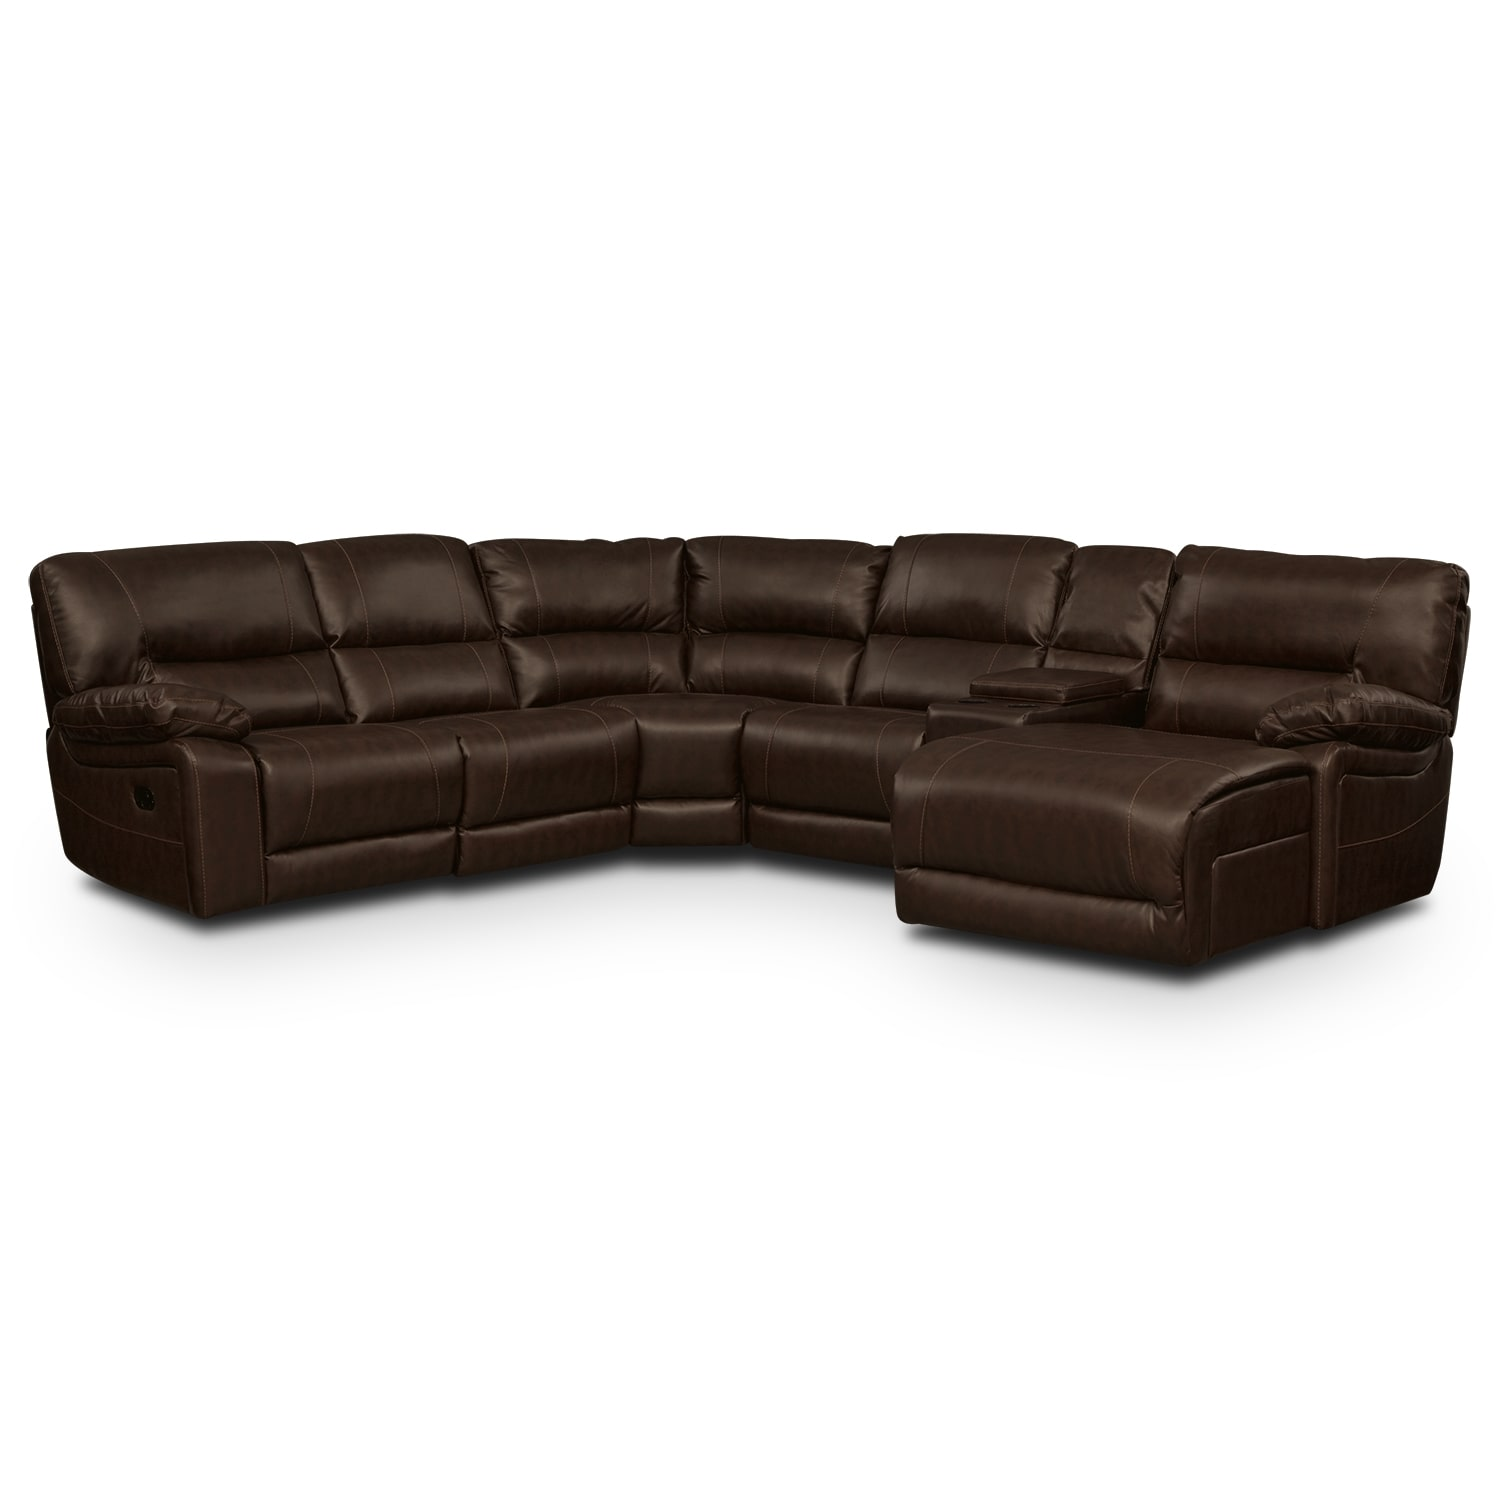 Living Room Furniture - Durango Godiva 5 Pc. Reclining Sectional